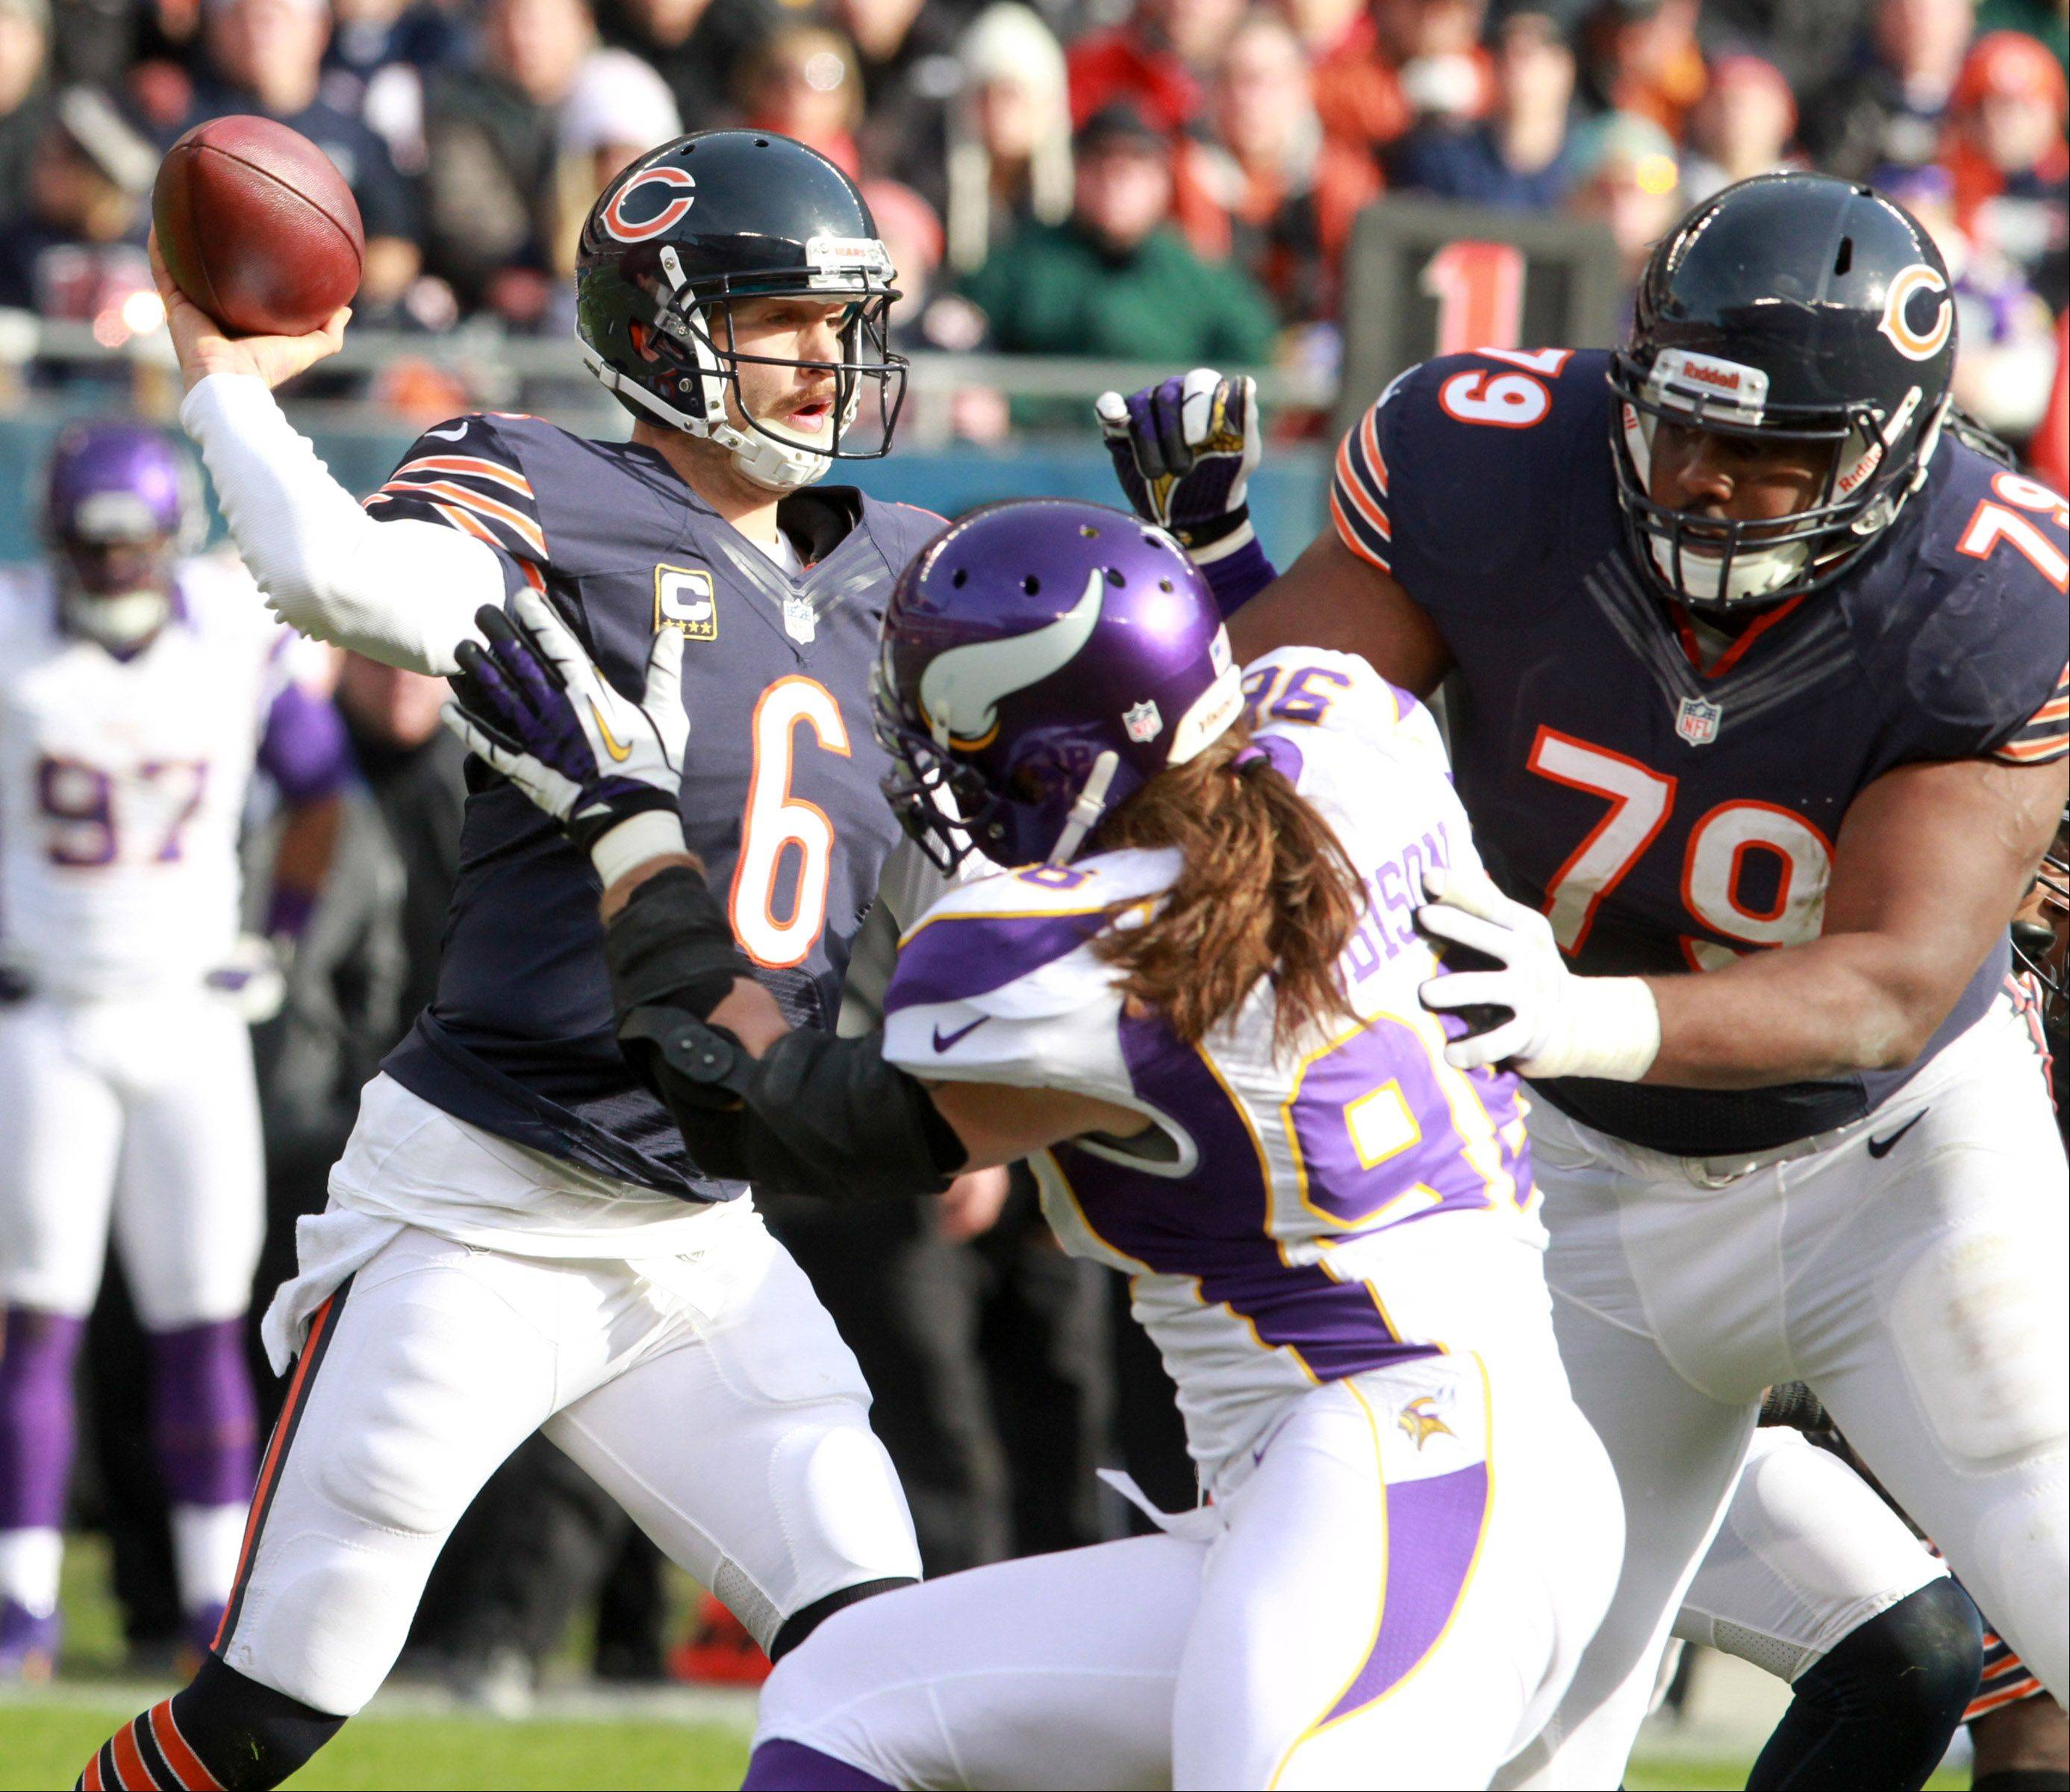 Chicago Bears quarterback Jay Cutler throws the ball as Bears tackle Jonathan Scott blocks Minnesota Vikings defensive end Brian Robison at Soldier Field Sunday.